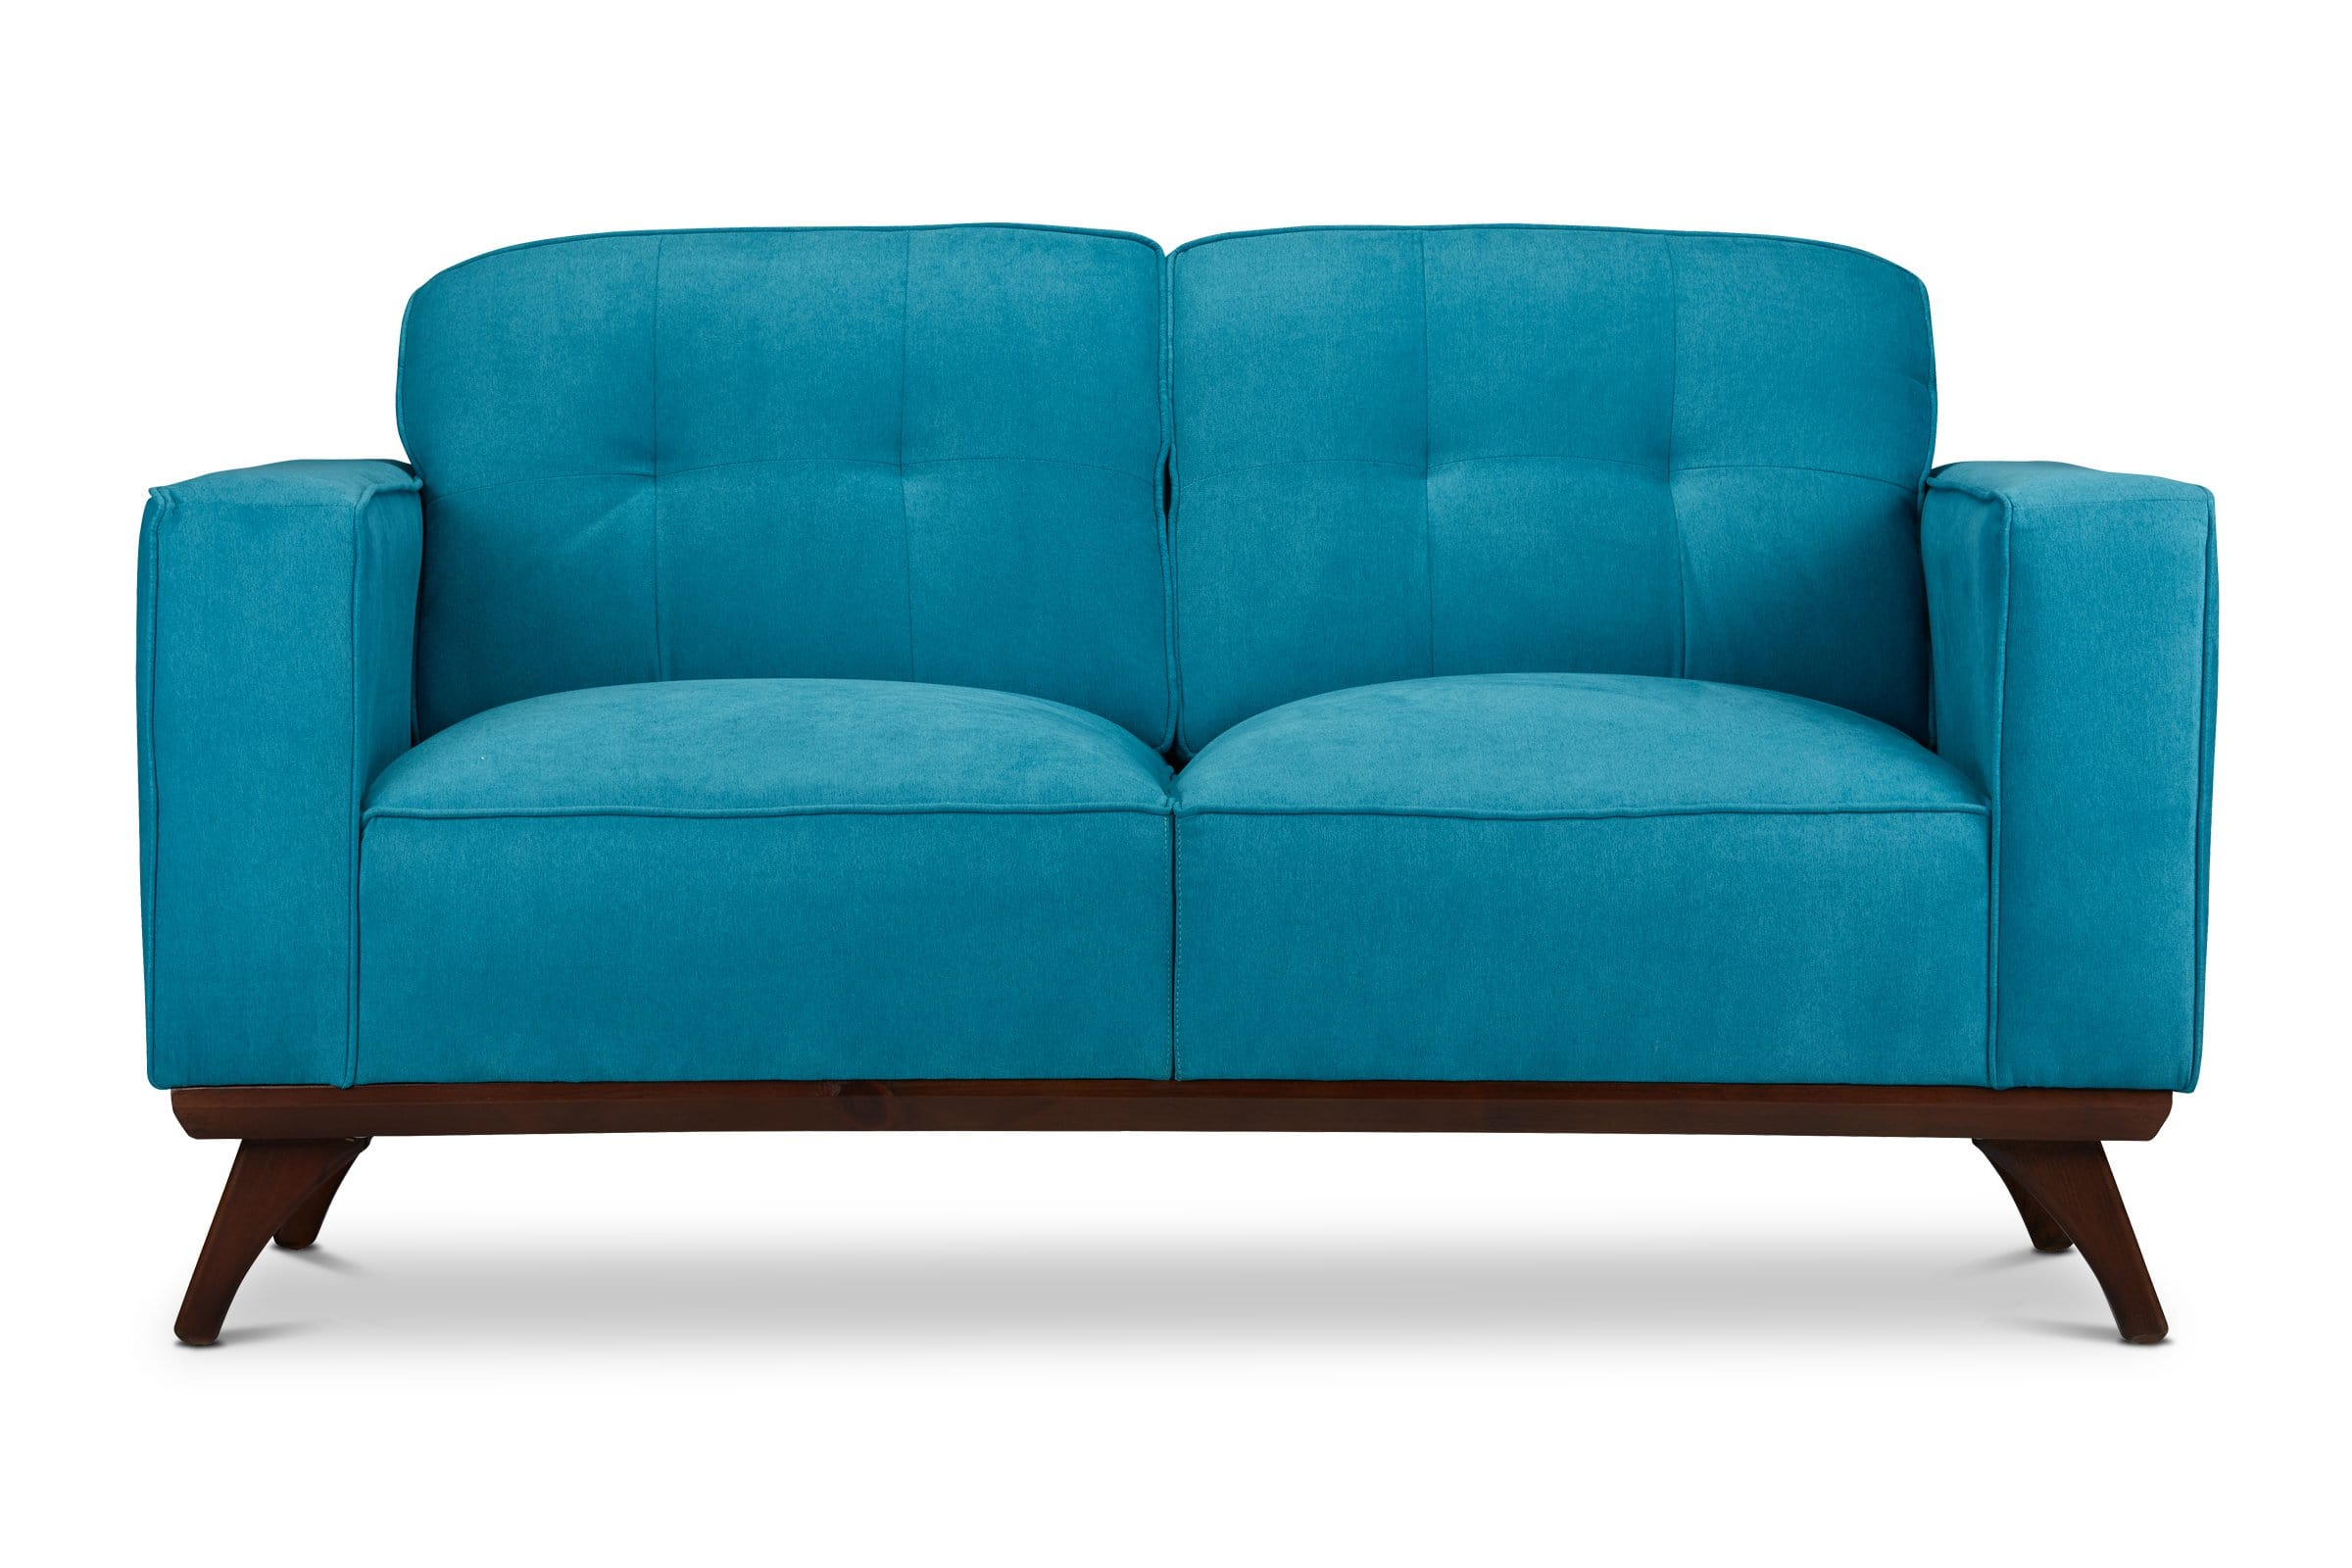 Zane Loveseat - Blue - Modern Furniture - Sold by Apt2B - Blue - Small Space Modern Couch Made in the USA - Sold by Apt2B